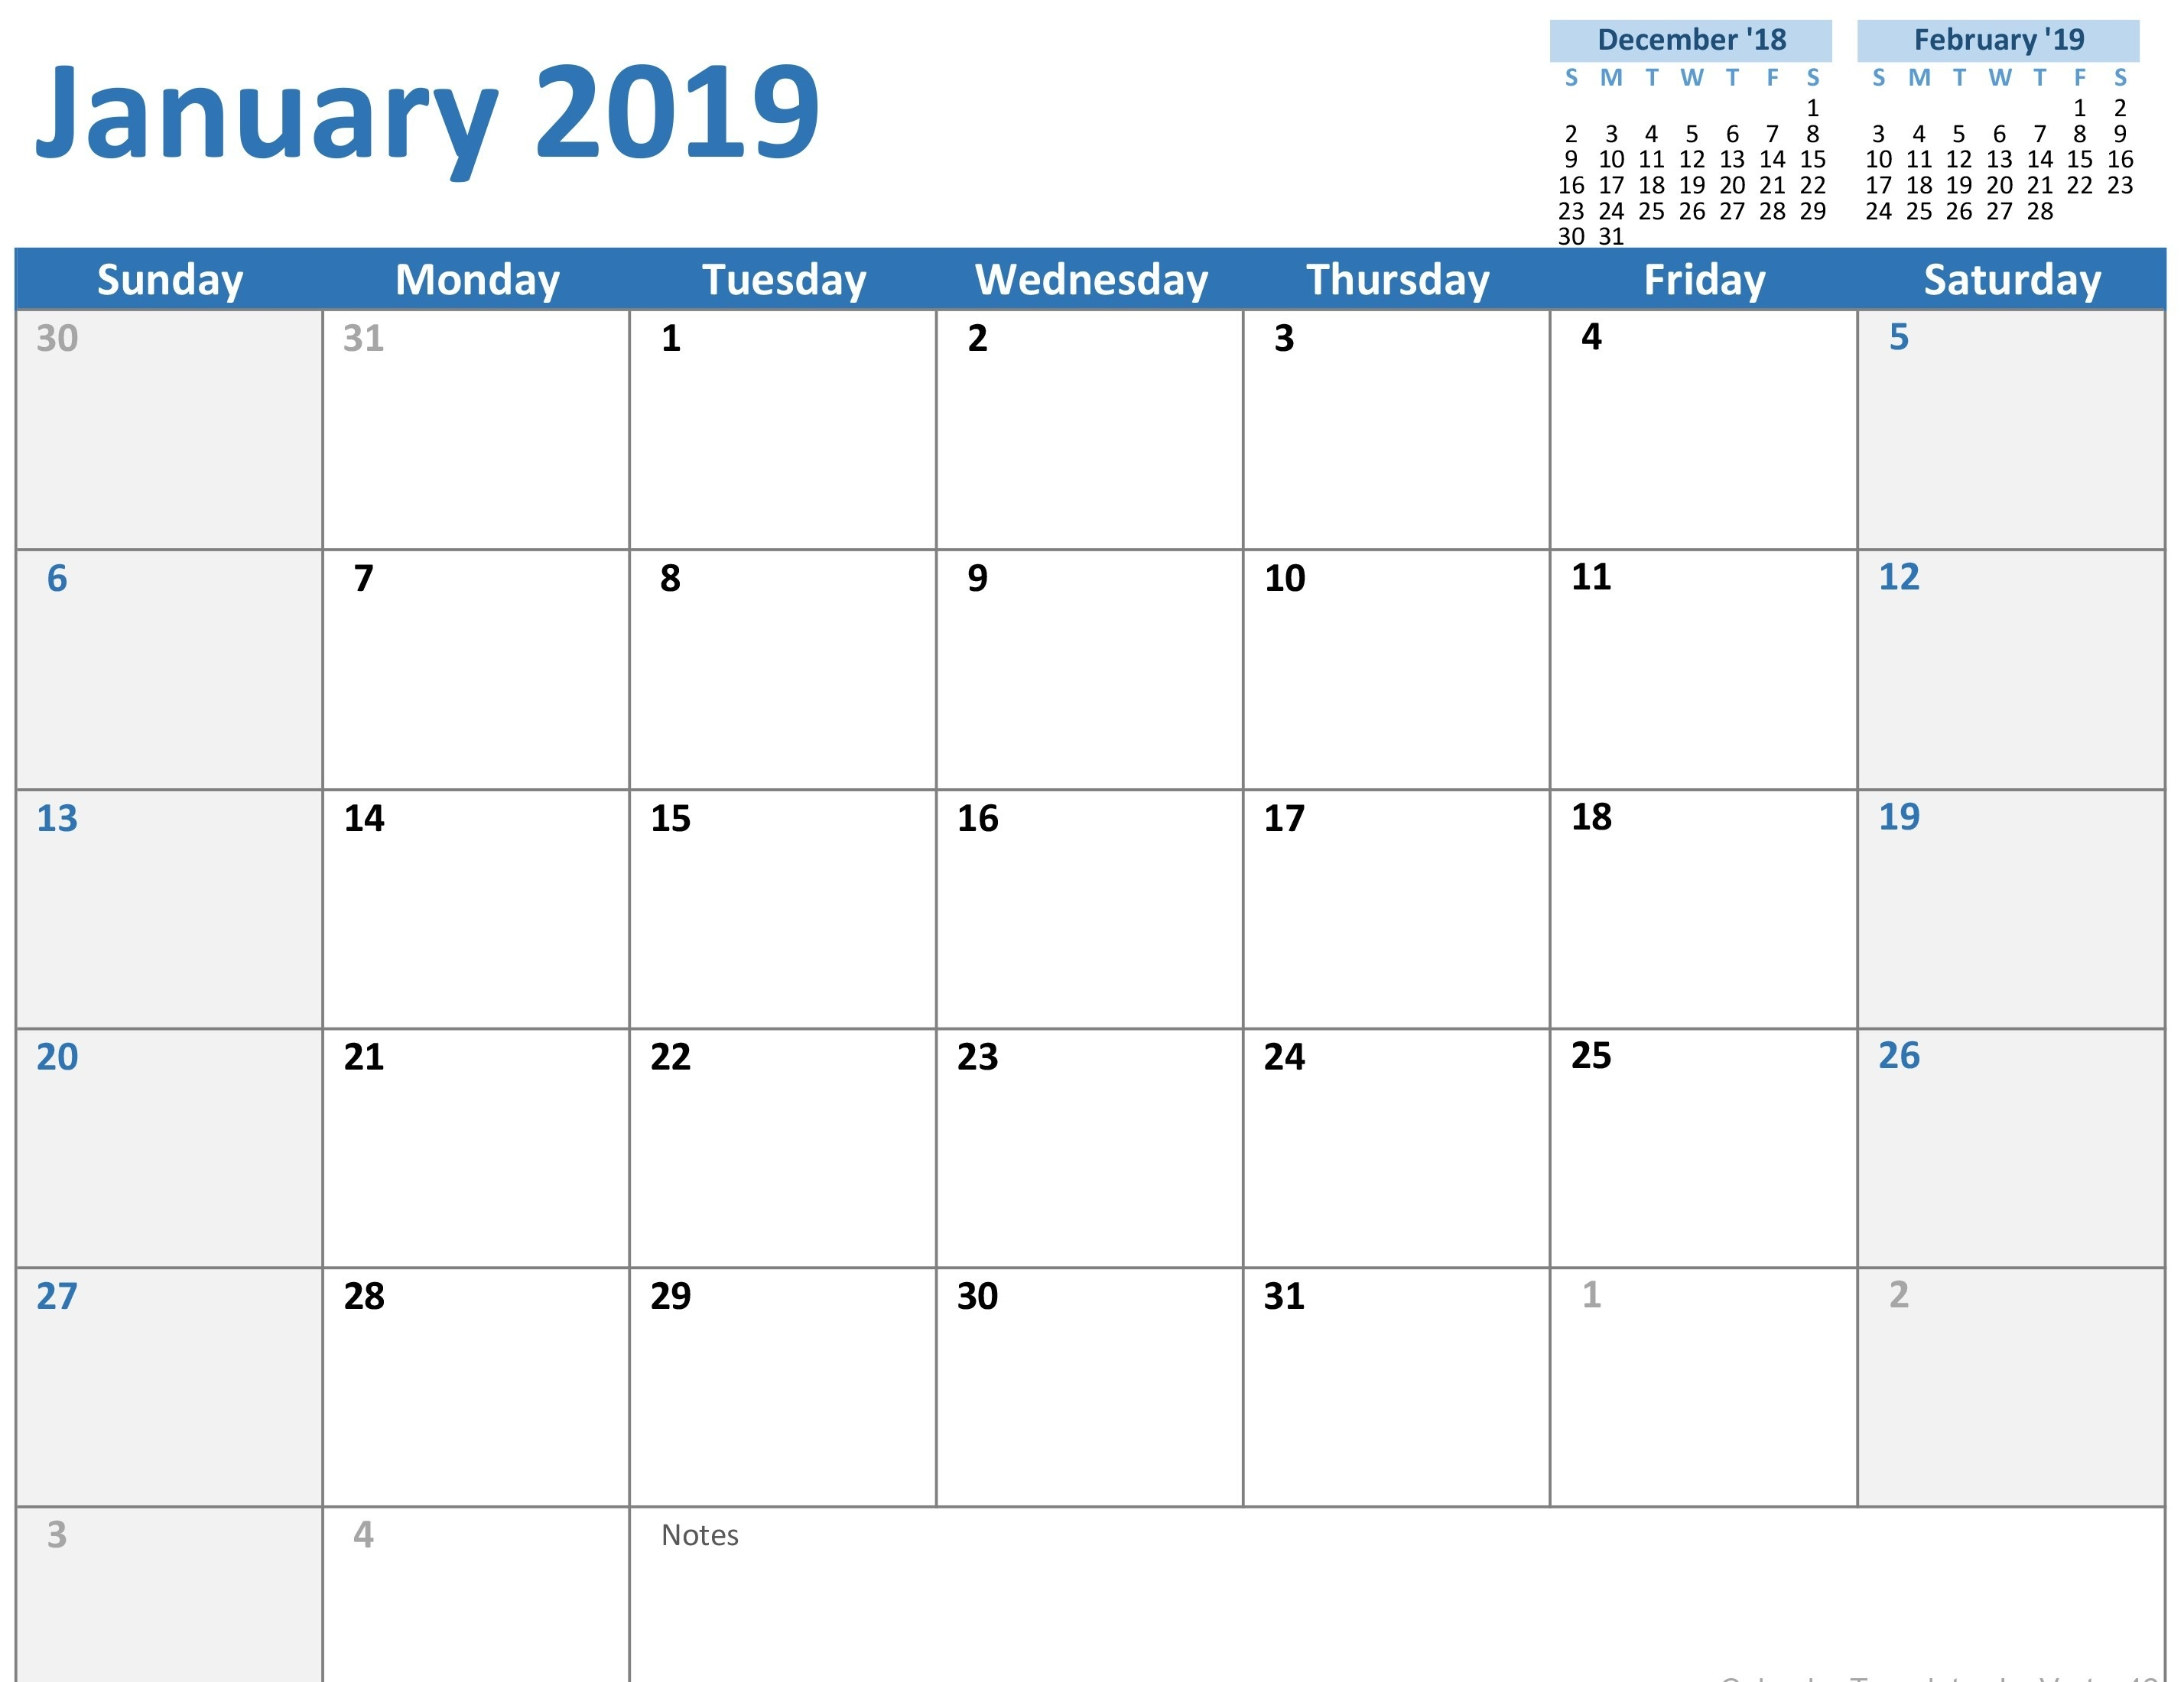 Calendars In Microsoft Word - Wpa.wpart.co-Blank Yearly Calendar Template In Word 2003